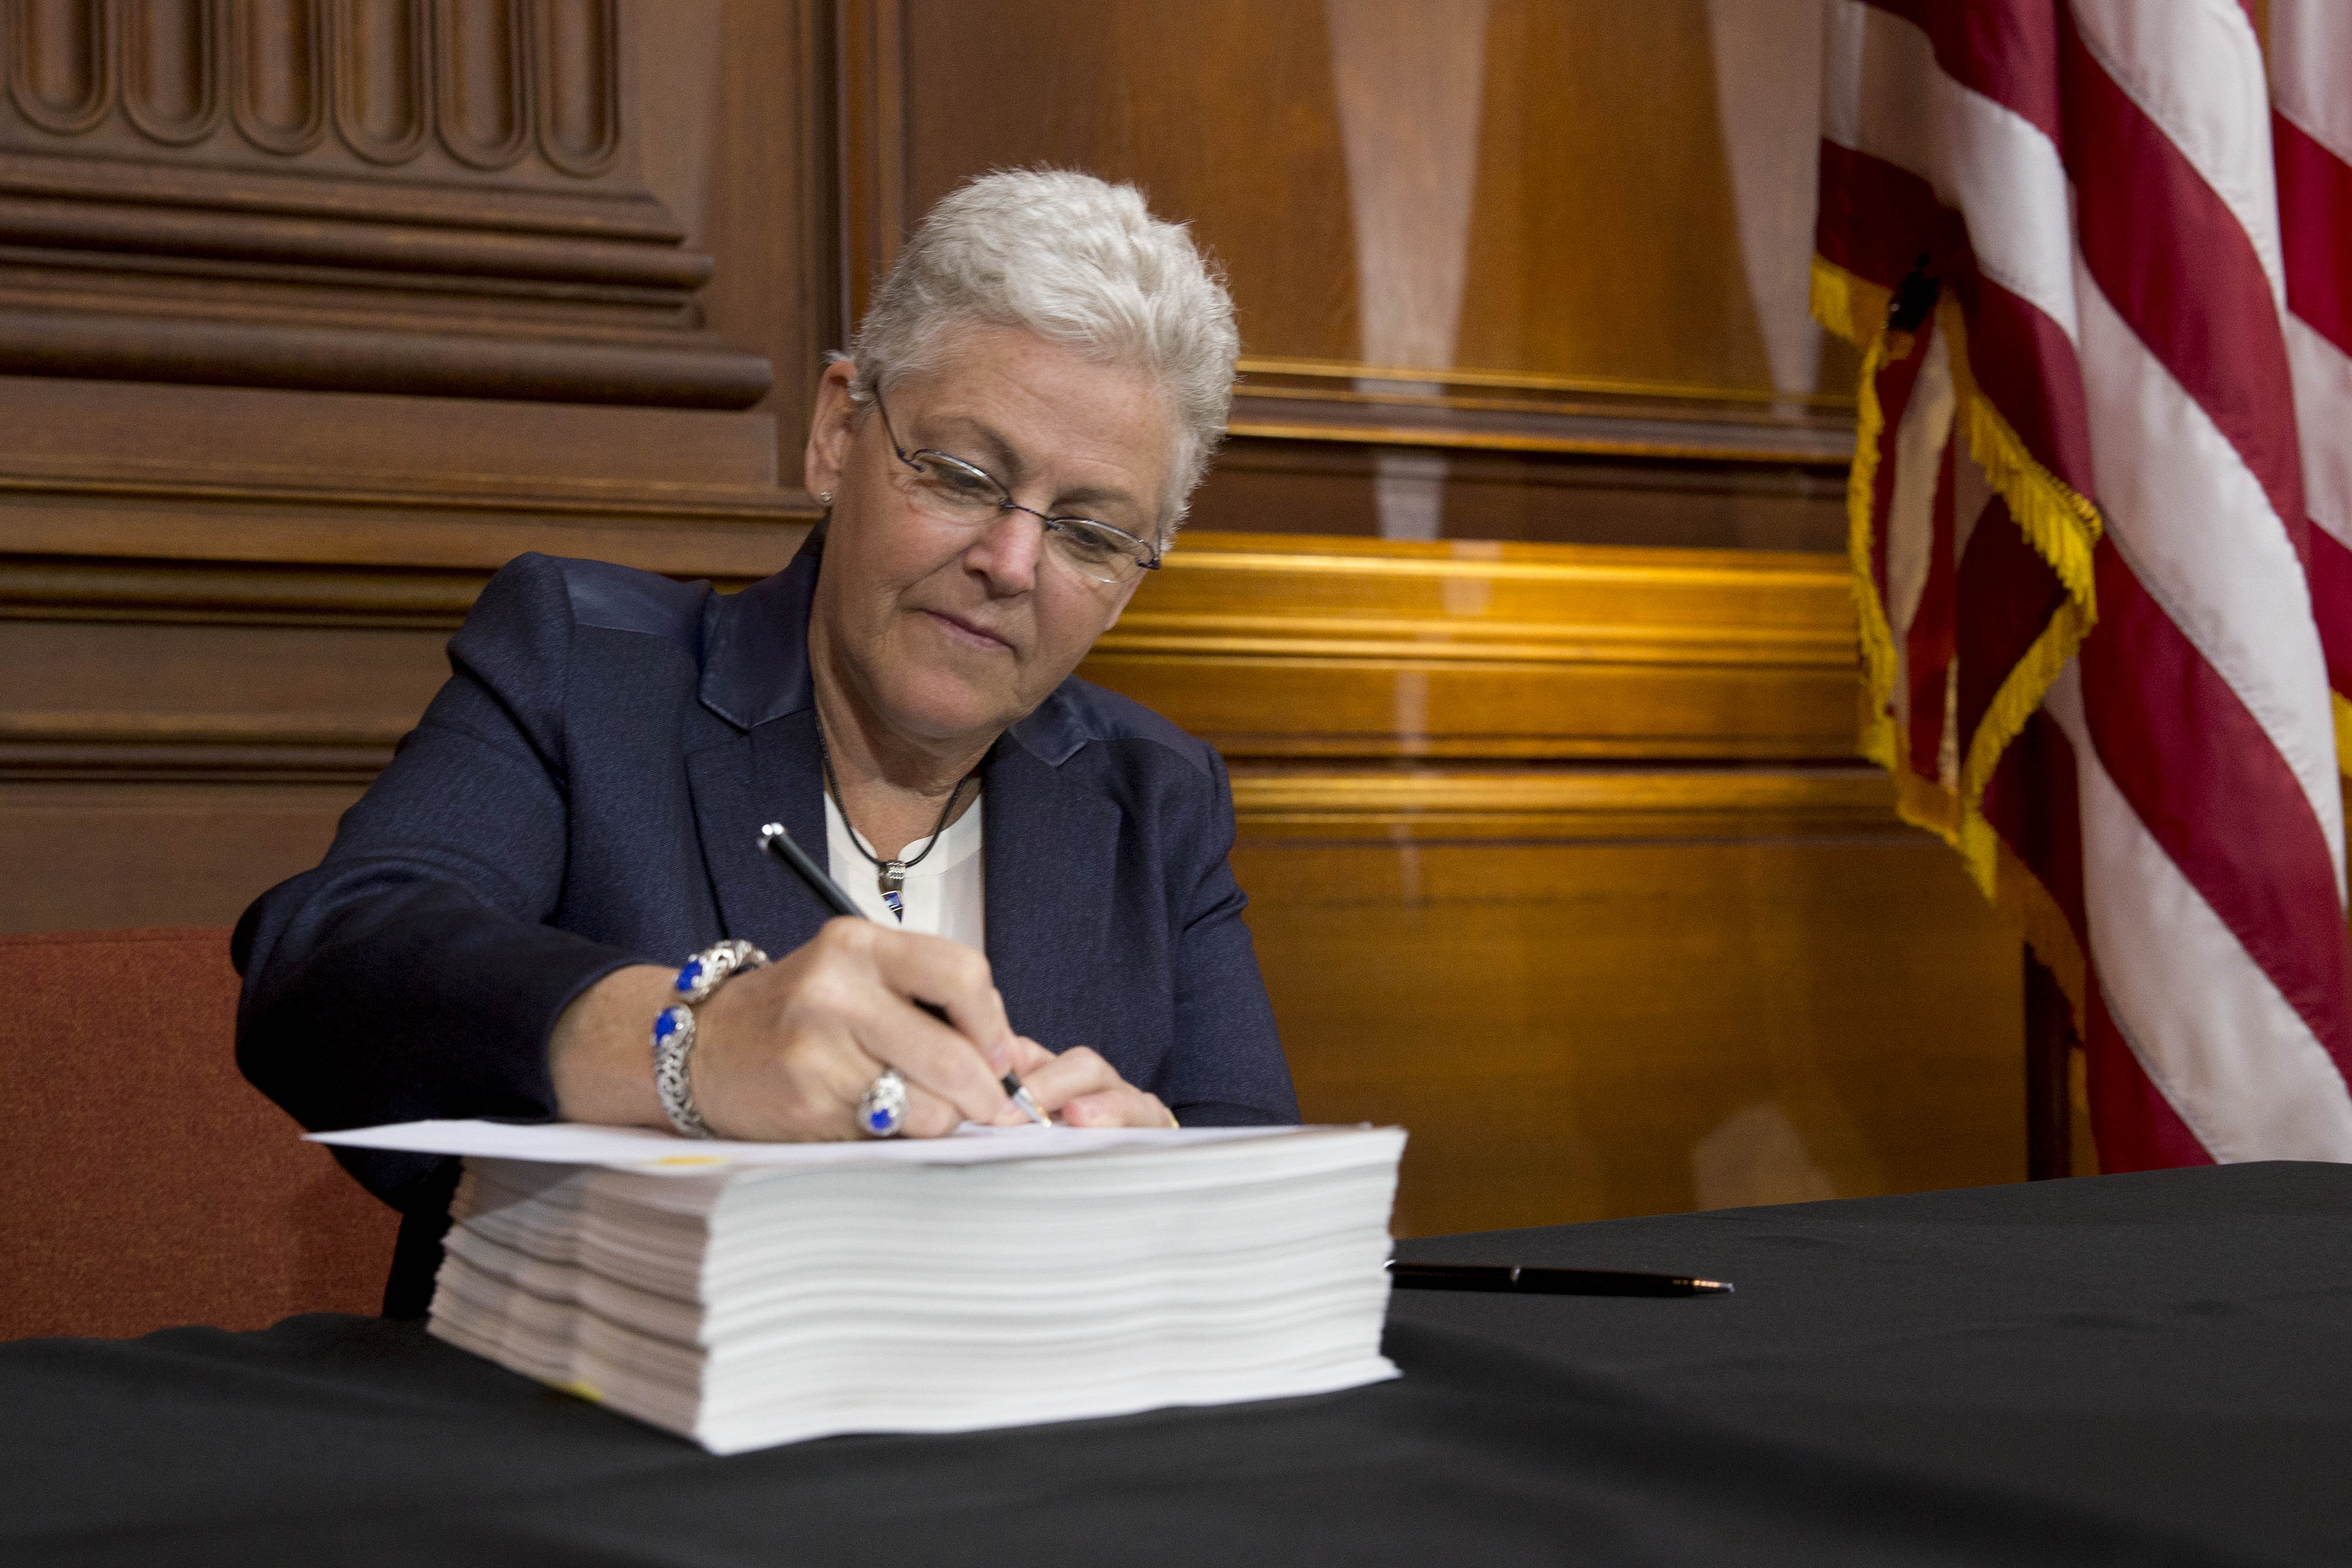 Gina McCarthy, administrator of the Environmental Protection Agency under President Obama, signs a power plant regulation proposal during a news conference in Washington, DC, on June 2, 2014. (Photo by Andrew Harrer/Bloomberg via Getty Images)